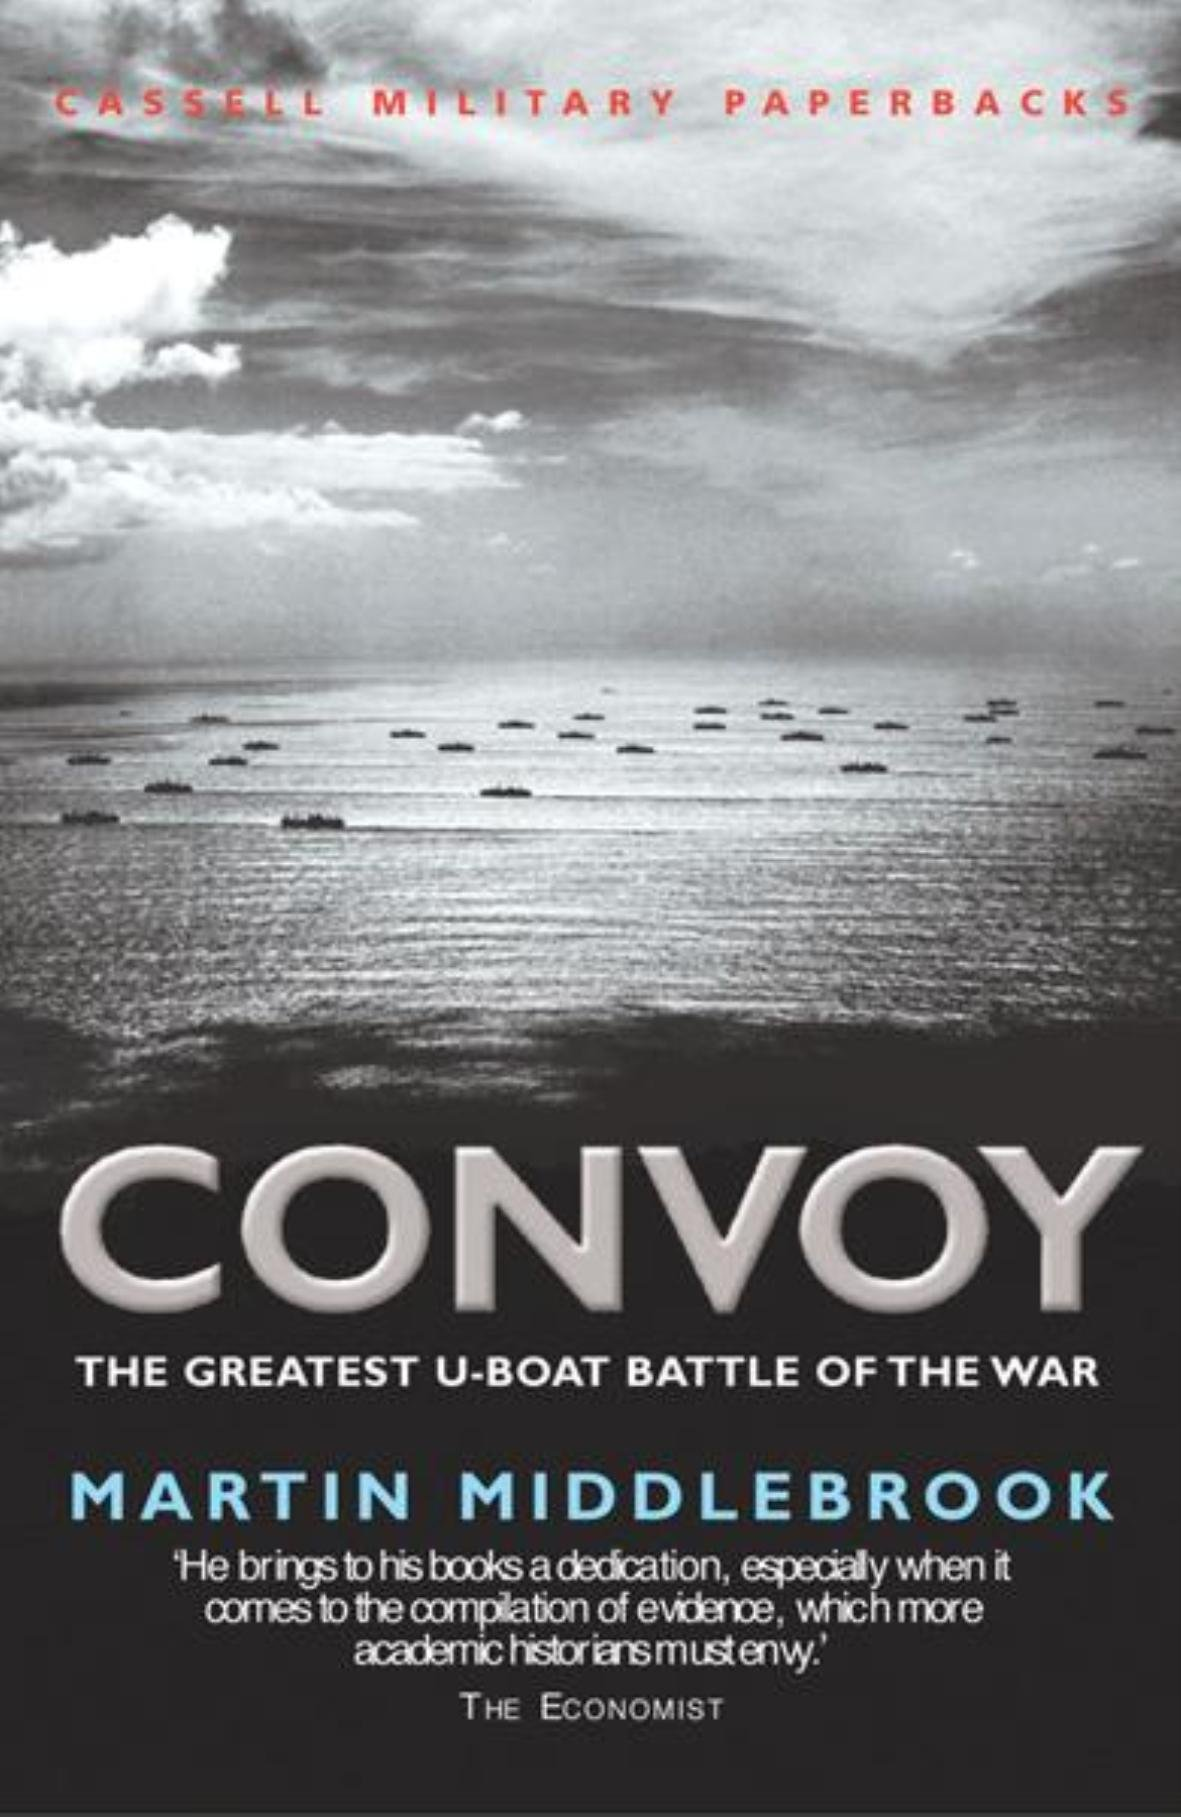 Convoy: The Greatest U-Boat Battle of the War (Cassell Military Paperbacks) pdf epub